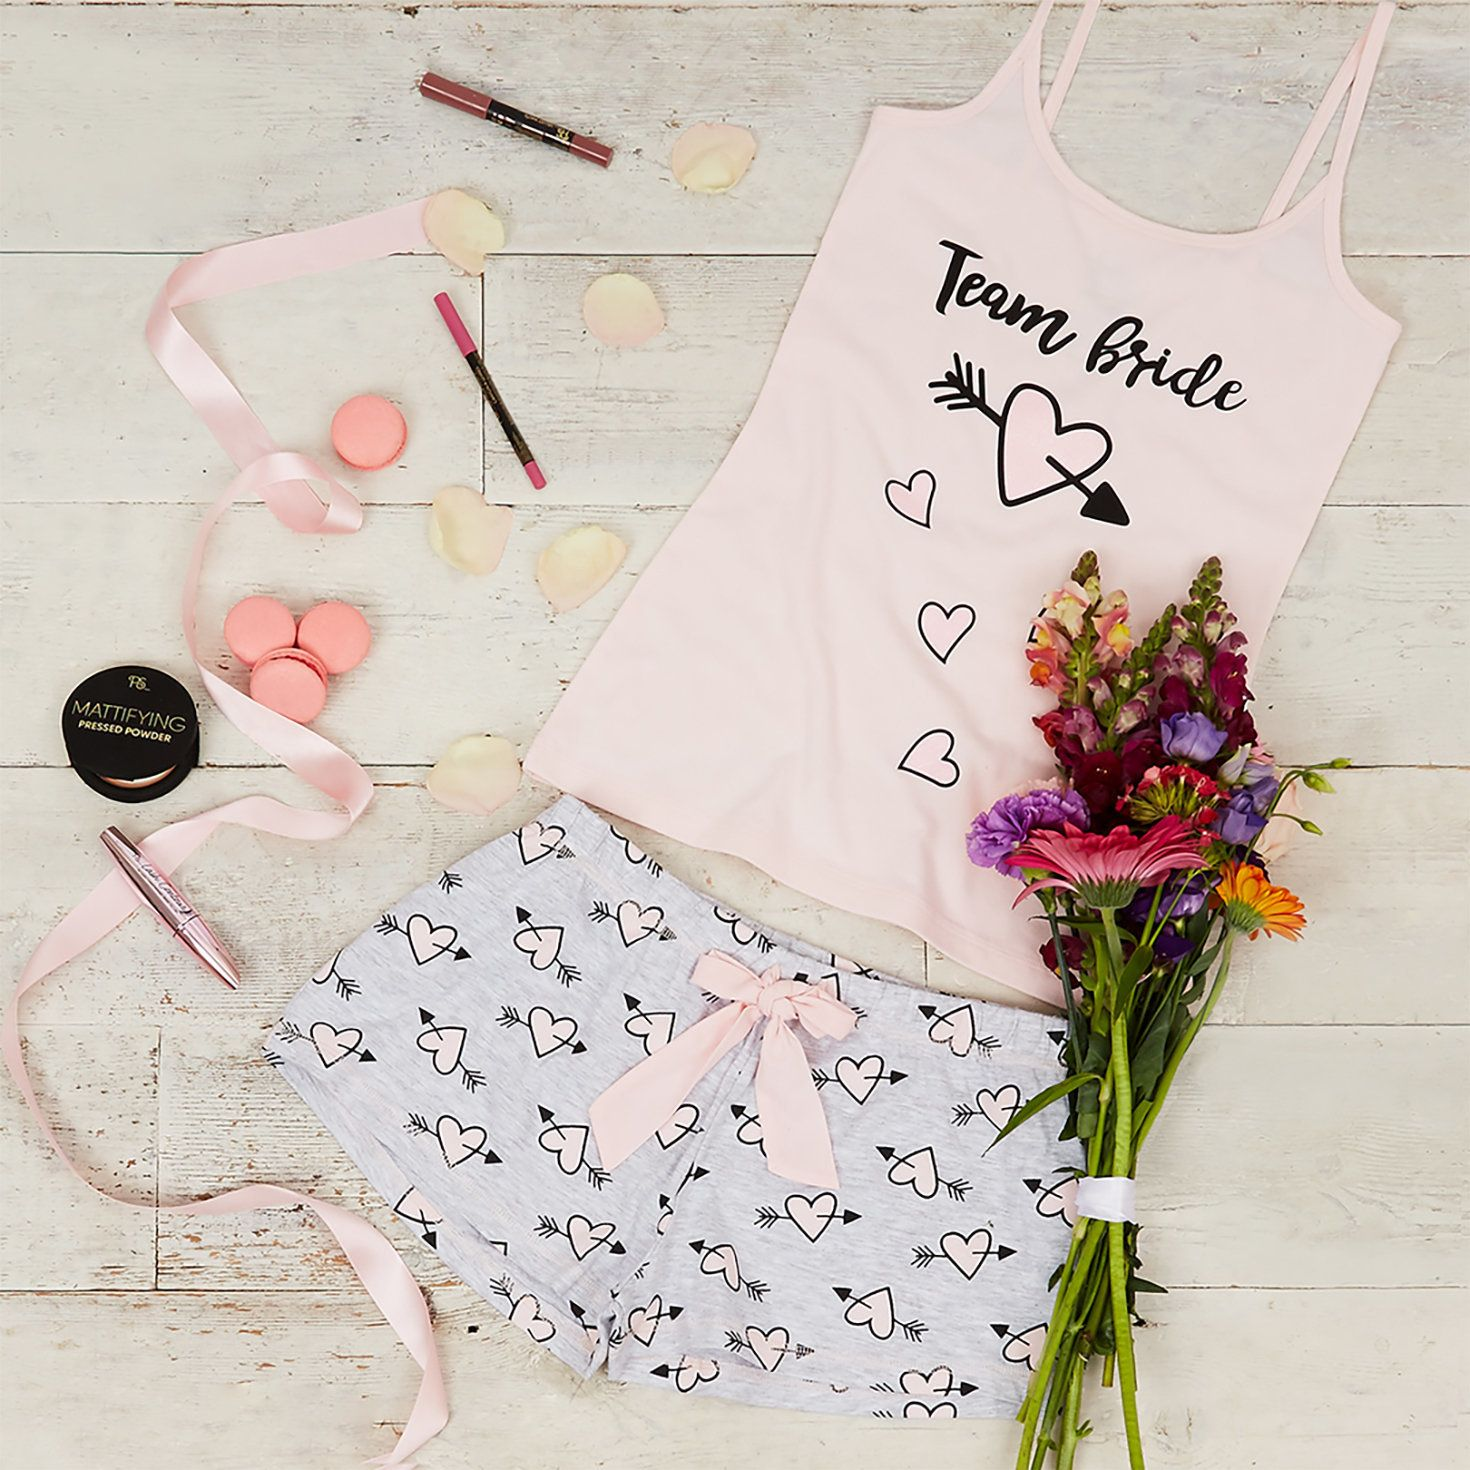 Primark Wedding Lingerie And Nightwear Collection: Everything Is Under £12 And Beyond